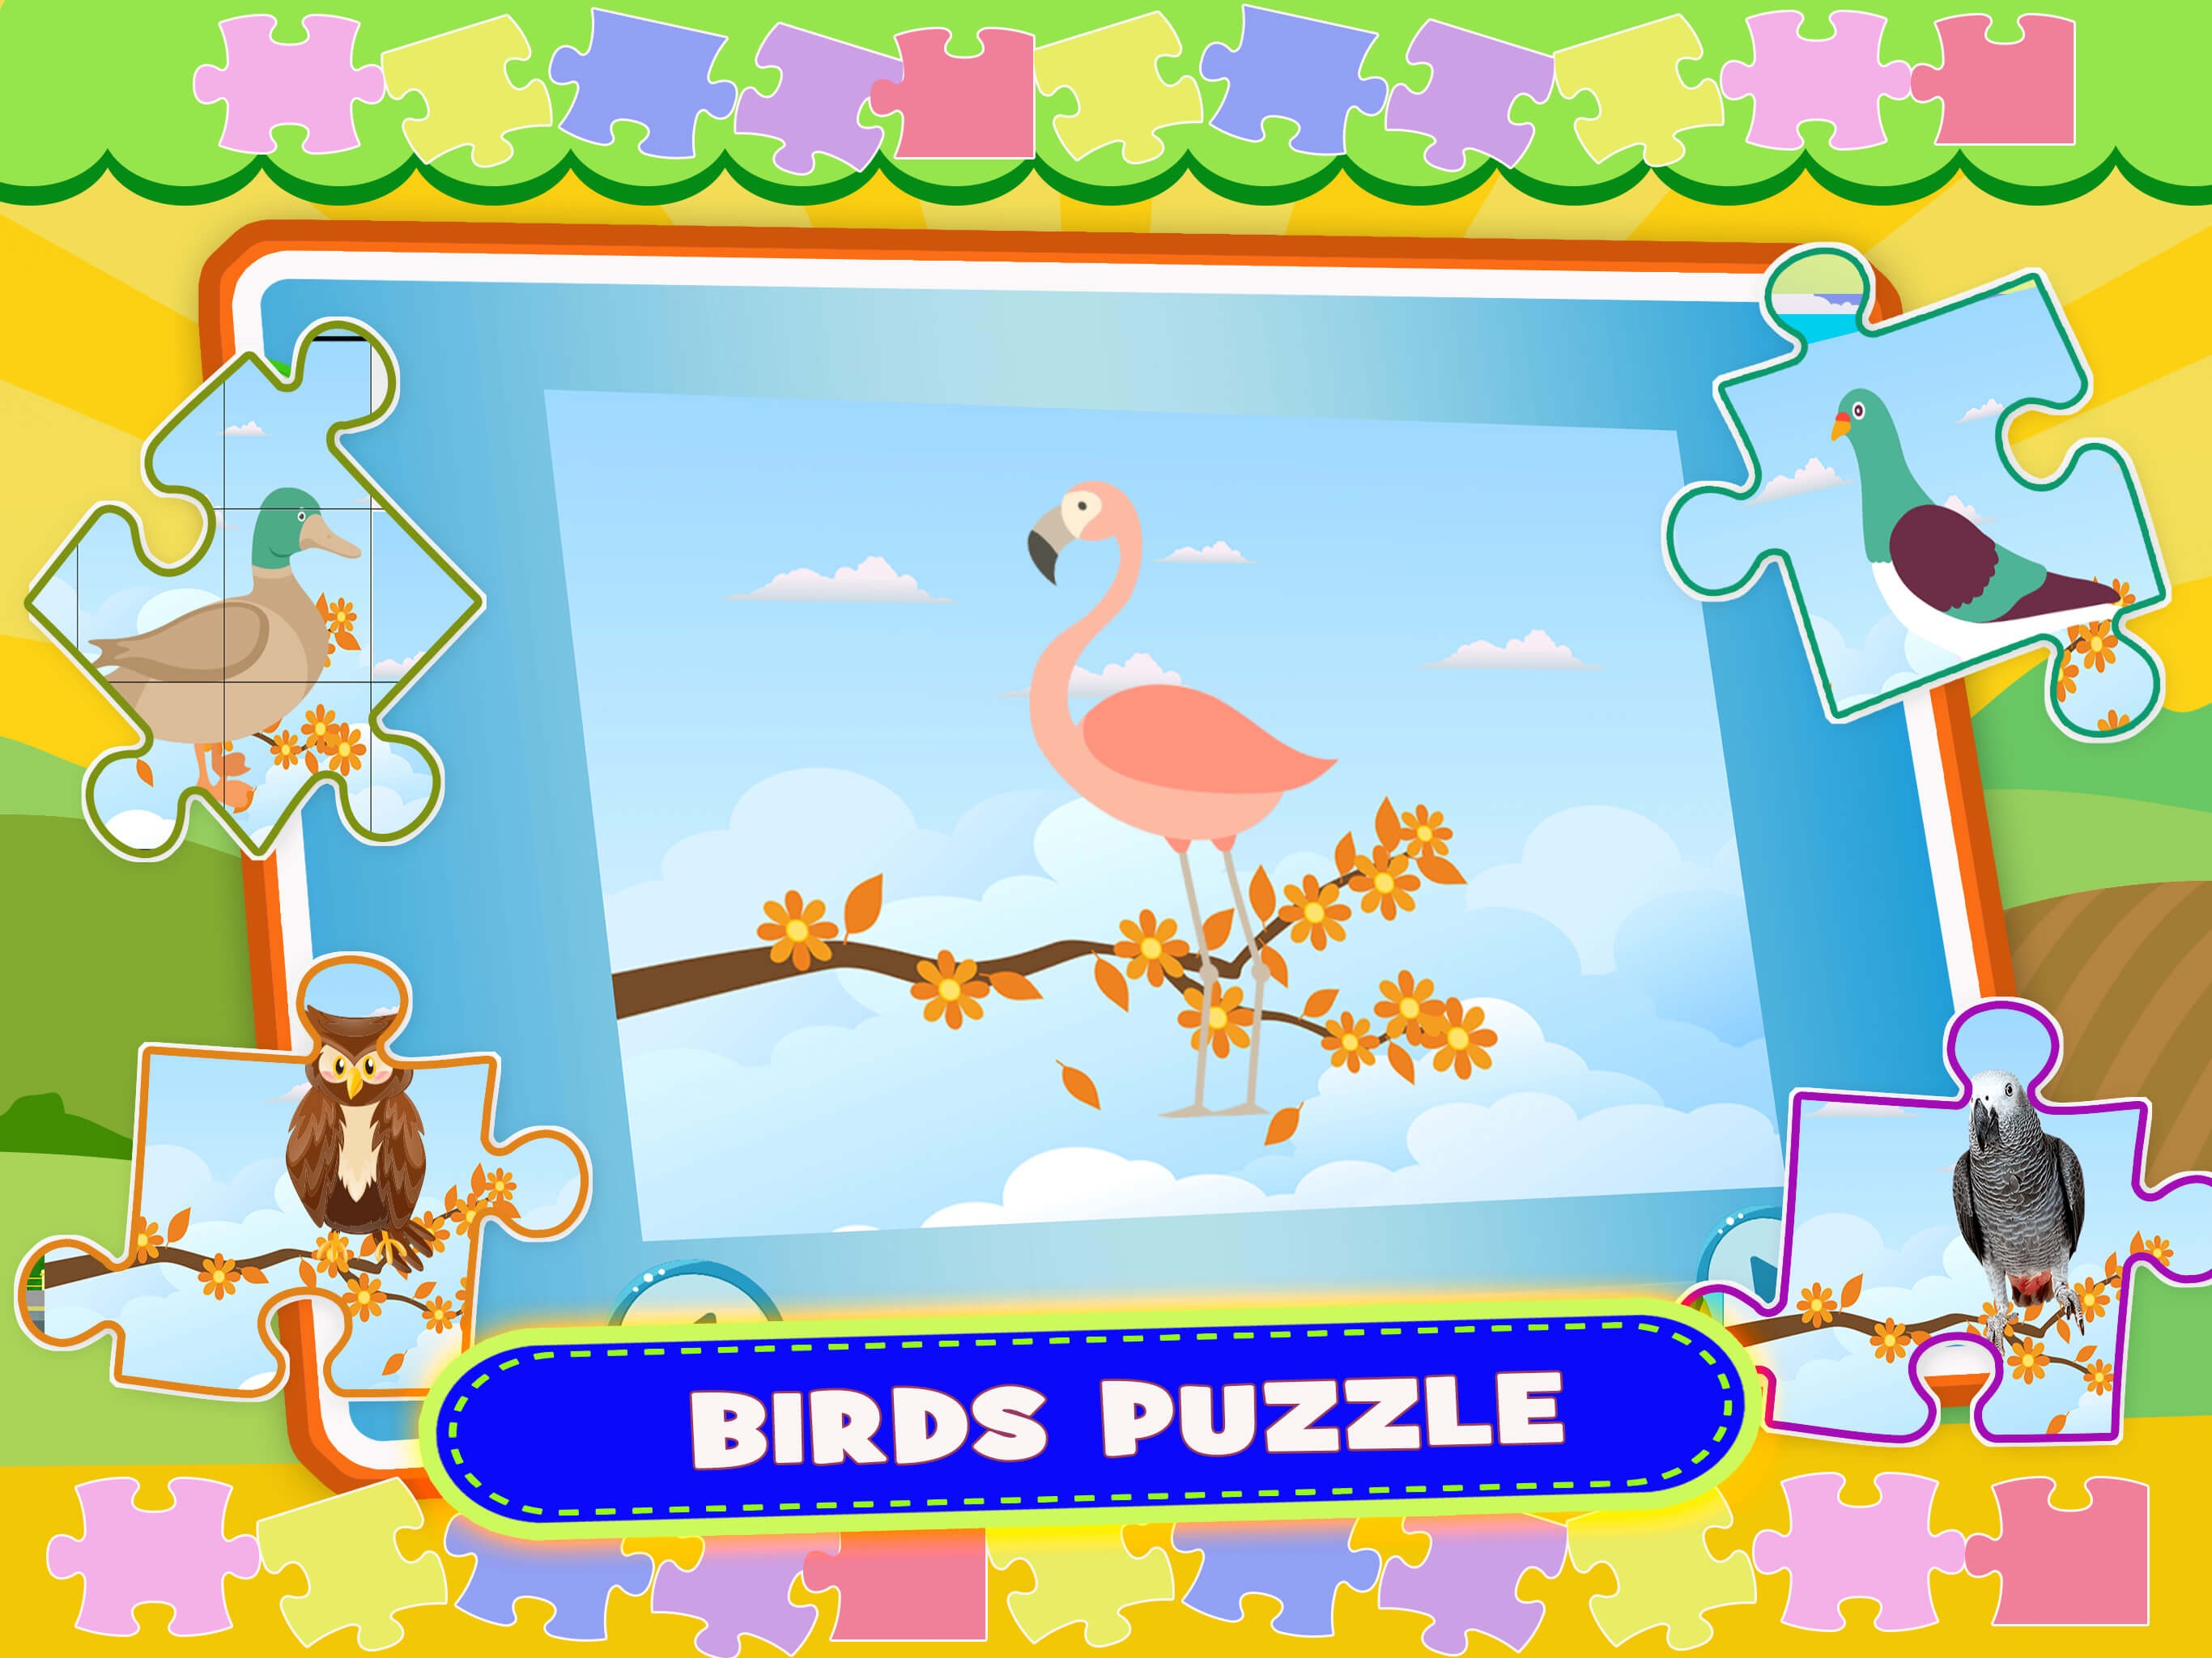 Jigsaw Puzzle Book Games - Letters Animals Puzzles